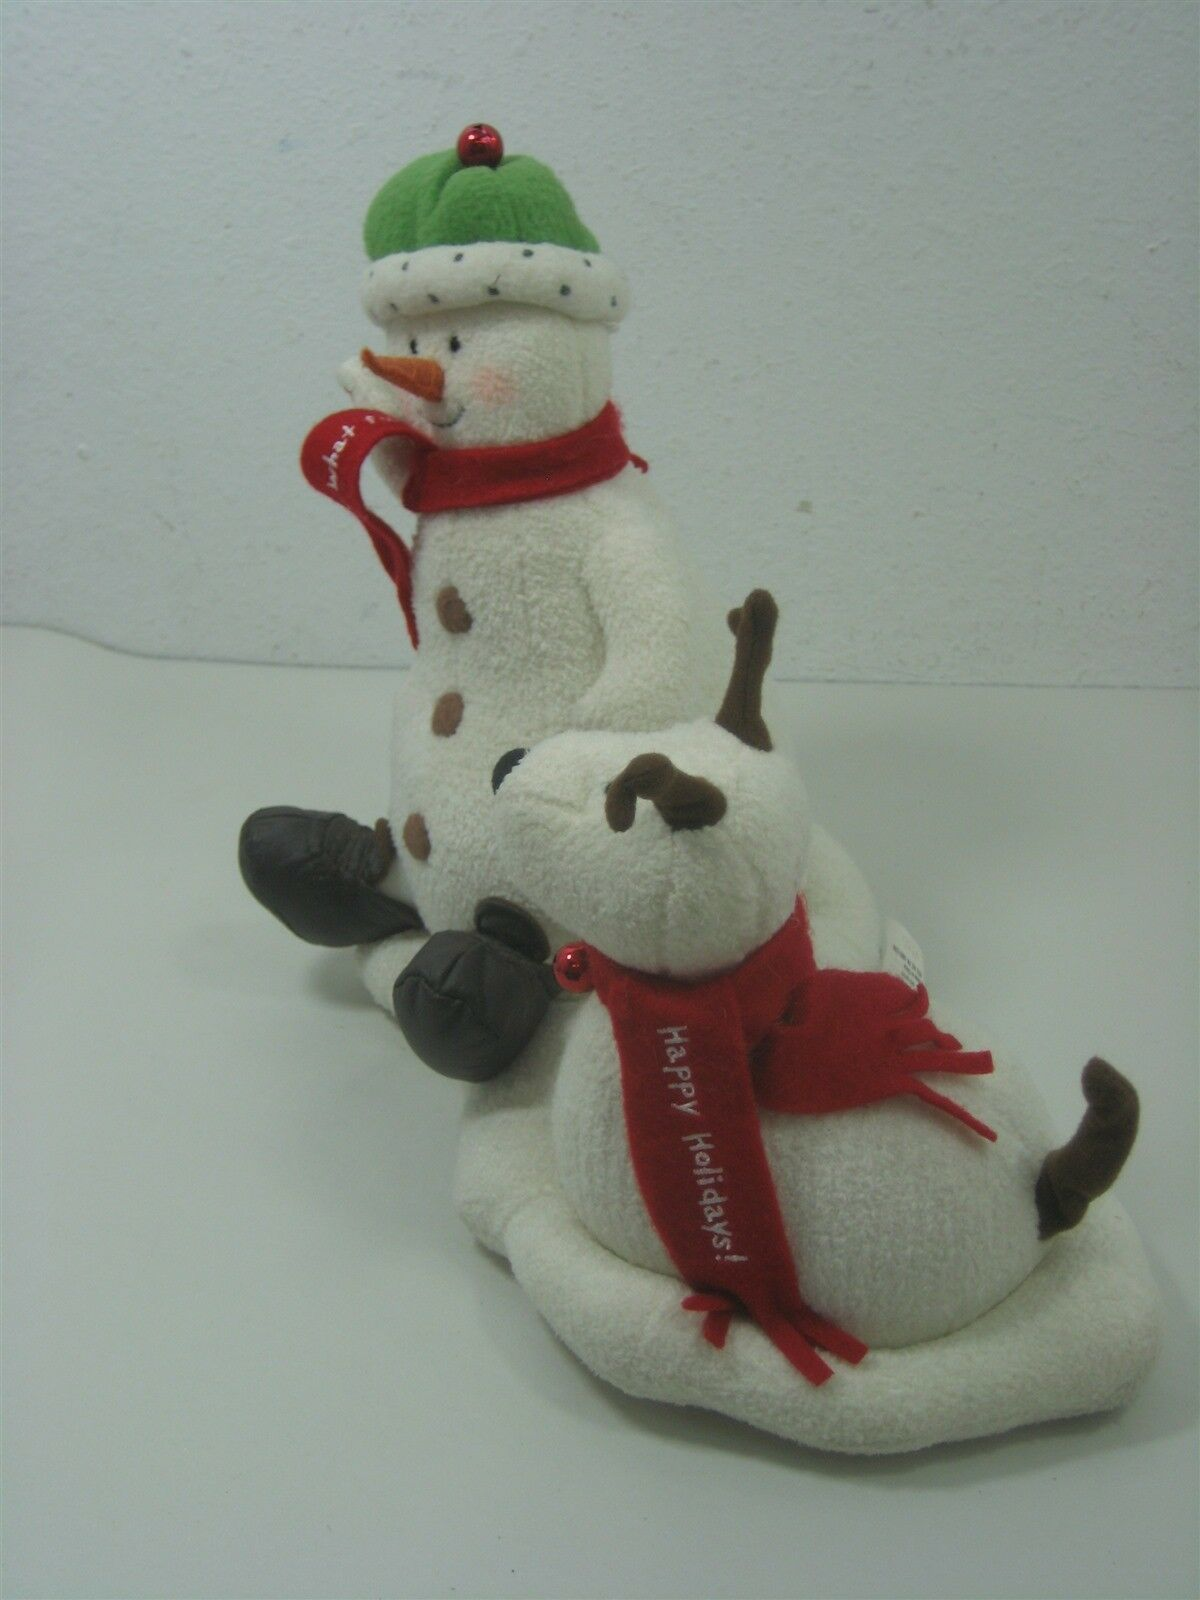 2004 Hallmark Jingle Pals Plush Snowman with Dog Animated Sings Jingle Bells image 3